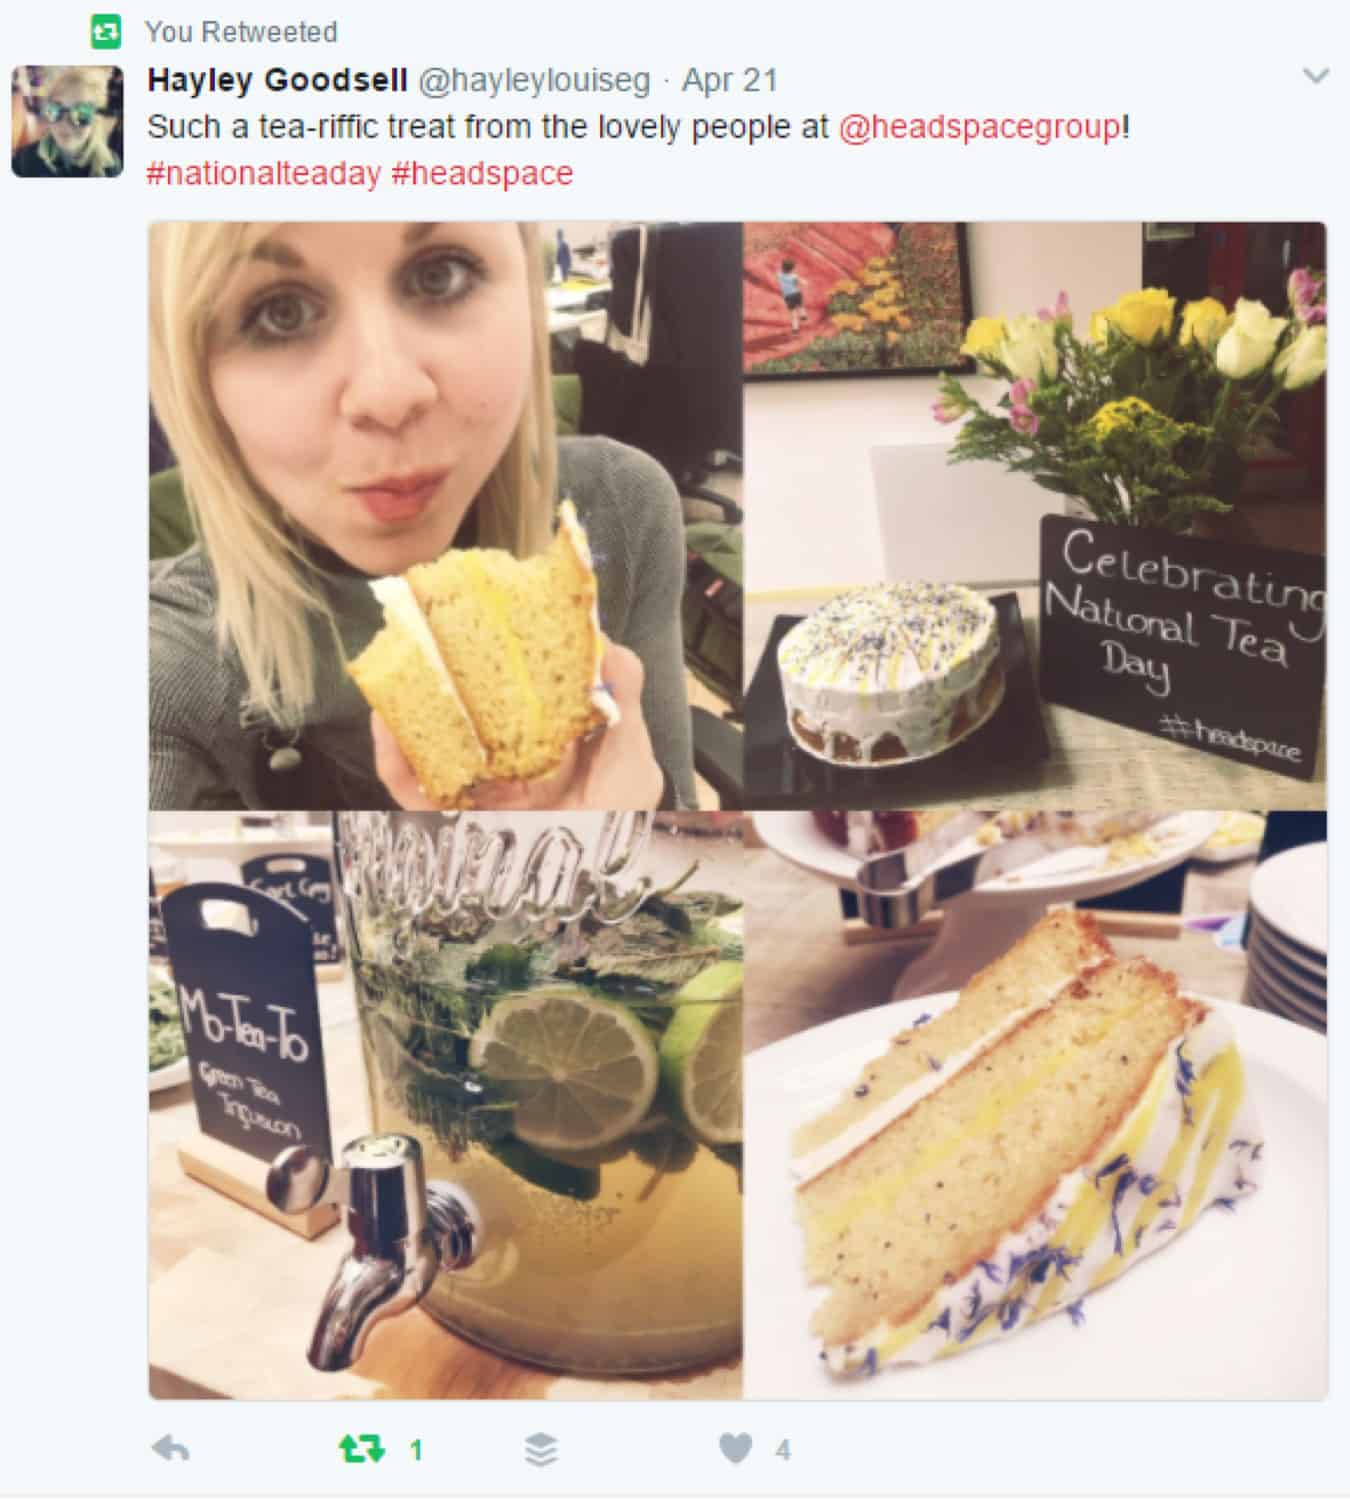 Twitter post with images of cake and tea